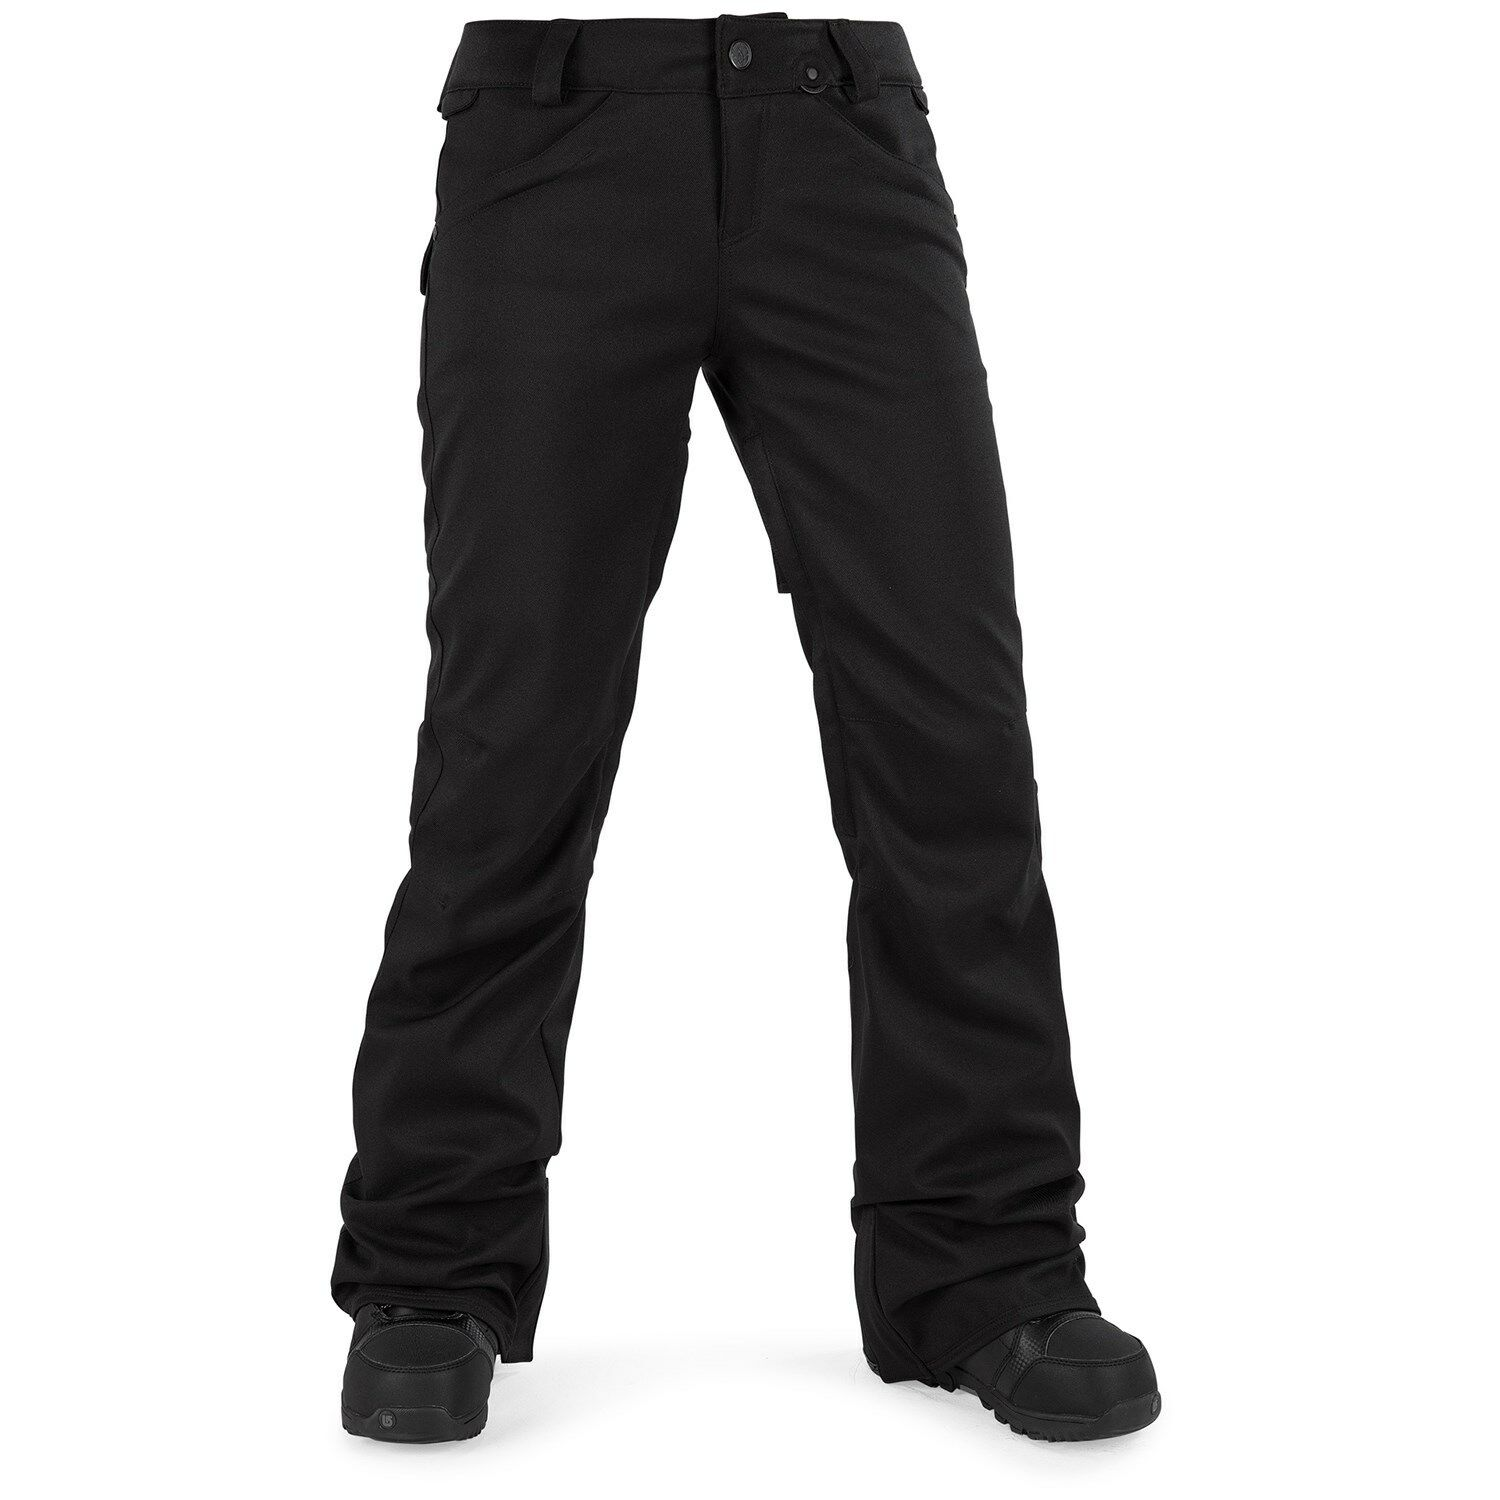 VOLCOM Women's 2019 SPECIES STRETCH Snow Pants - BLK - Medium - NWT